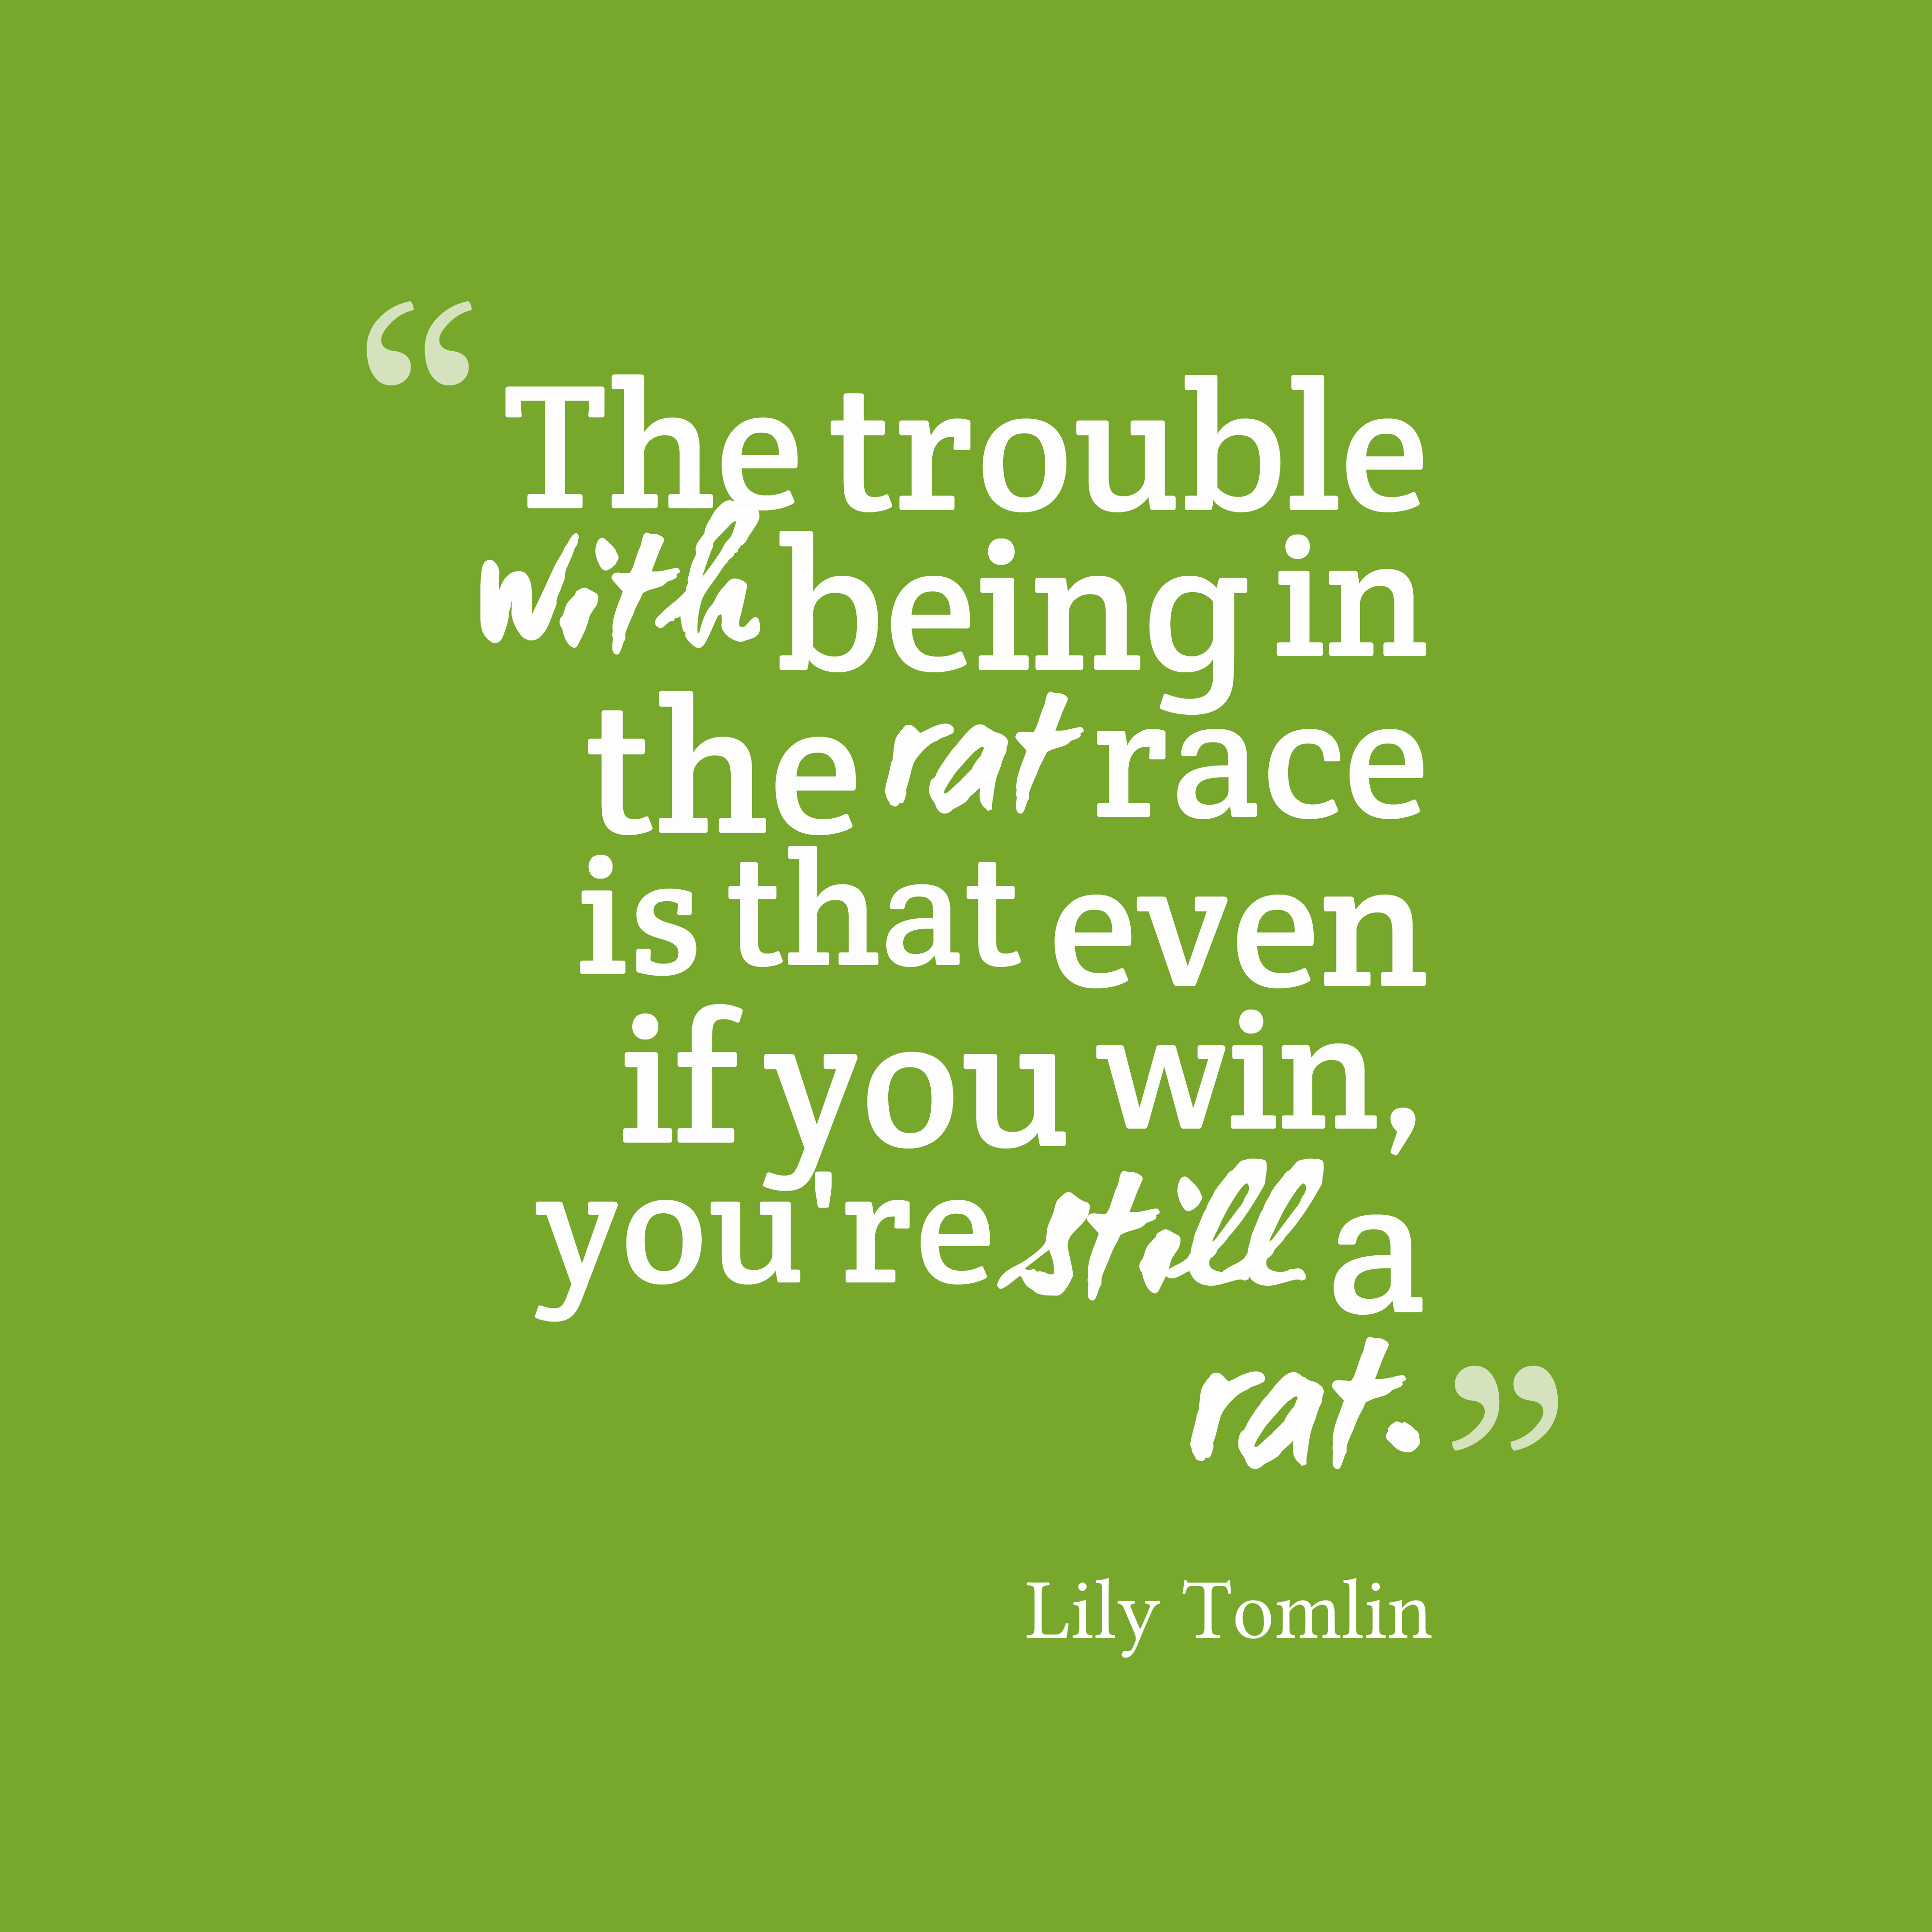 Quotes About Being High Lily Tomlin quote about trouble. Quotes About Being High